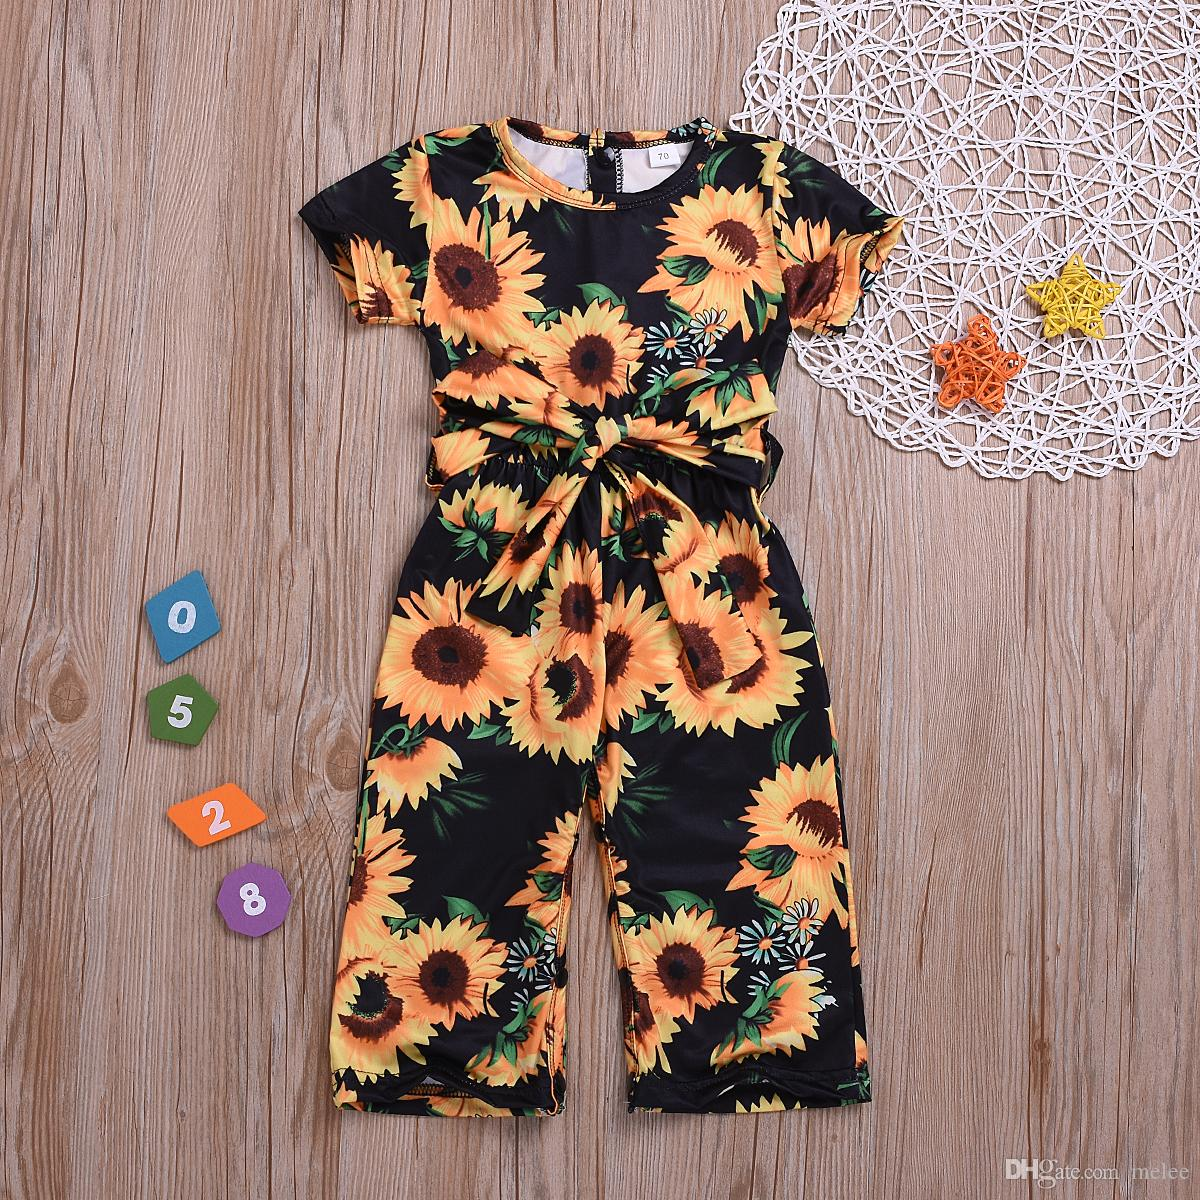 0662f455fcca7 Baby Kid Girl Floral Princess Romper Playsuit Shortsleeve Casual Clothes  Sunflower Jumpsuit Kids Baby Girl Clothing 2-7T